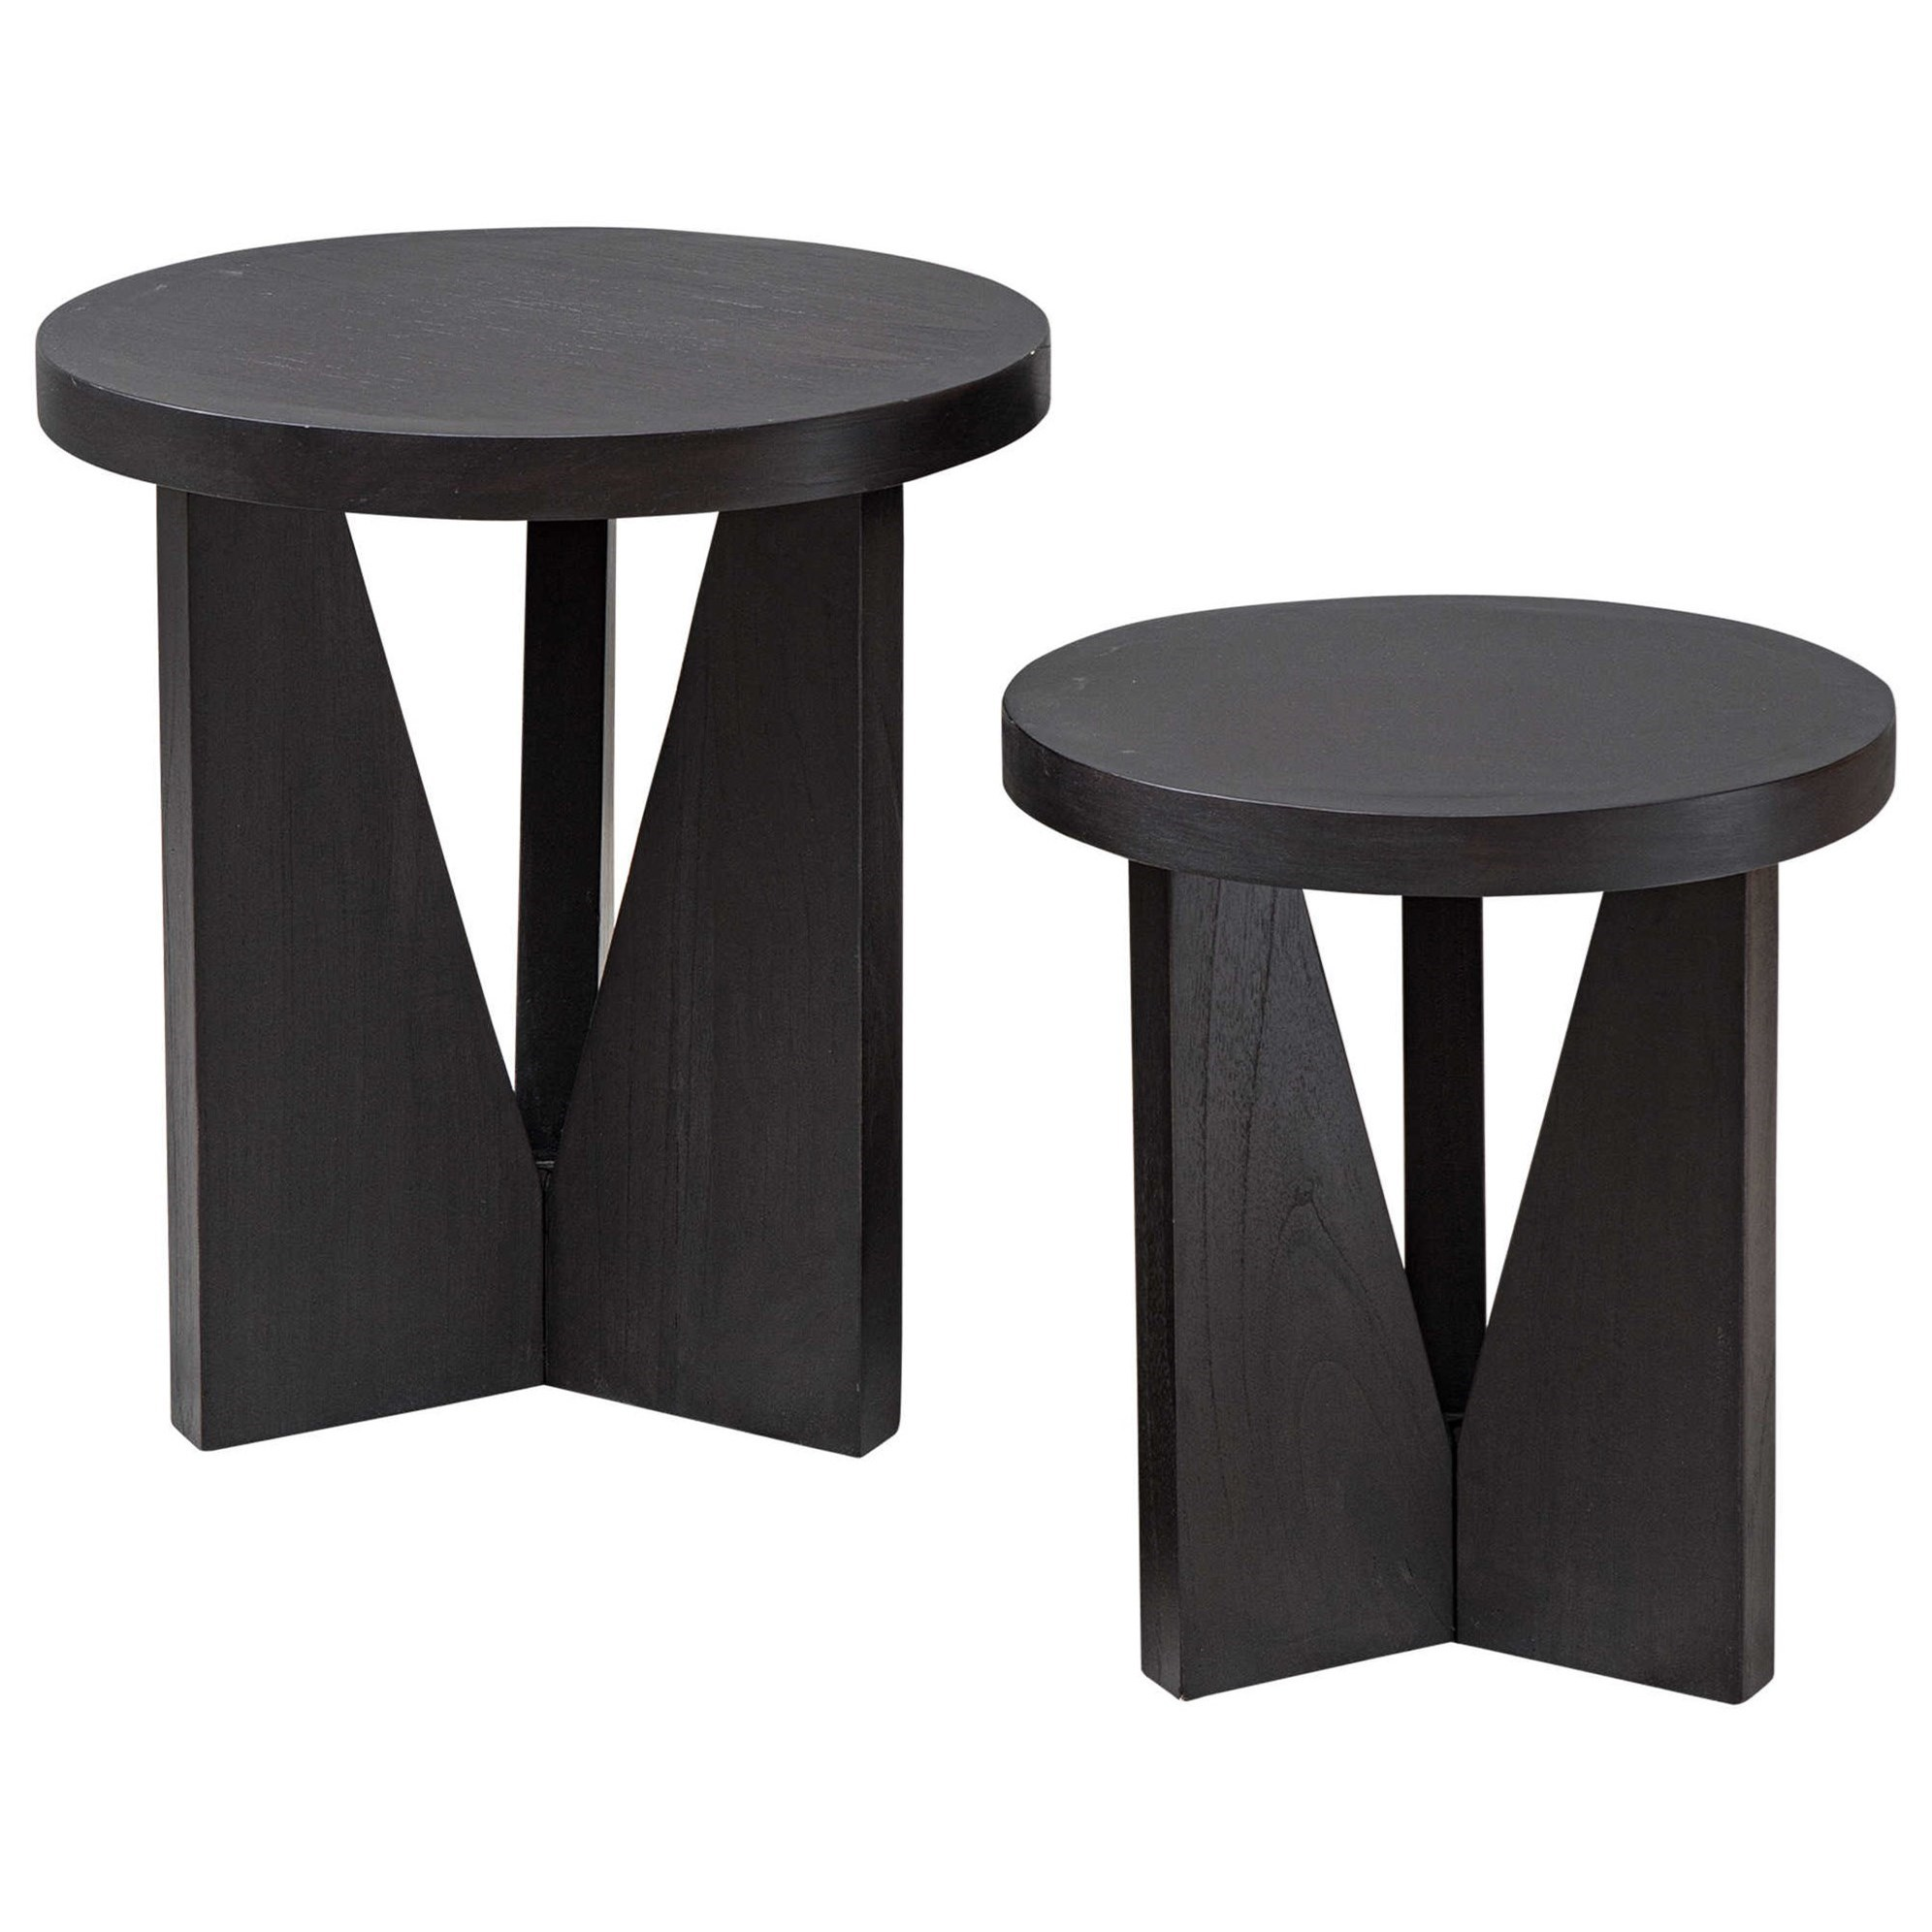 Accent Furniture - Occasional Tables Nadette Nesting Tables, S/2 by Uttermost at Factory Direct Furniture